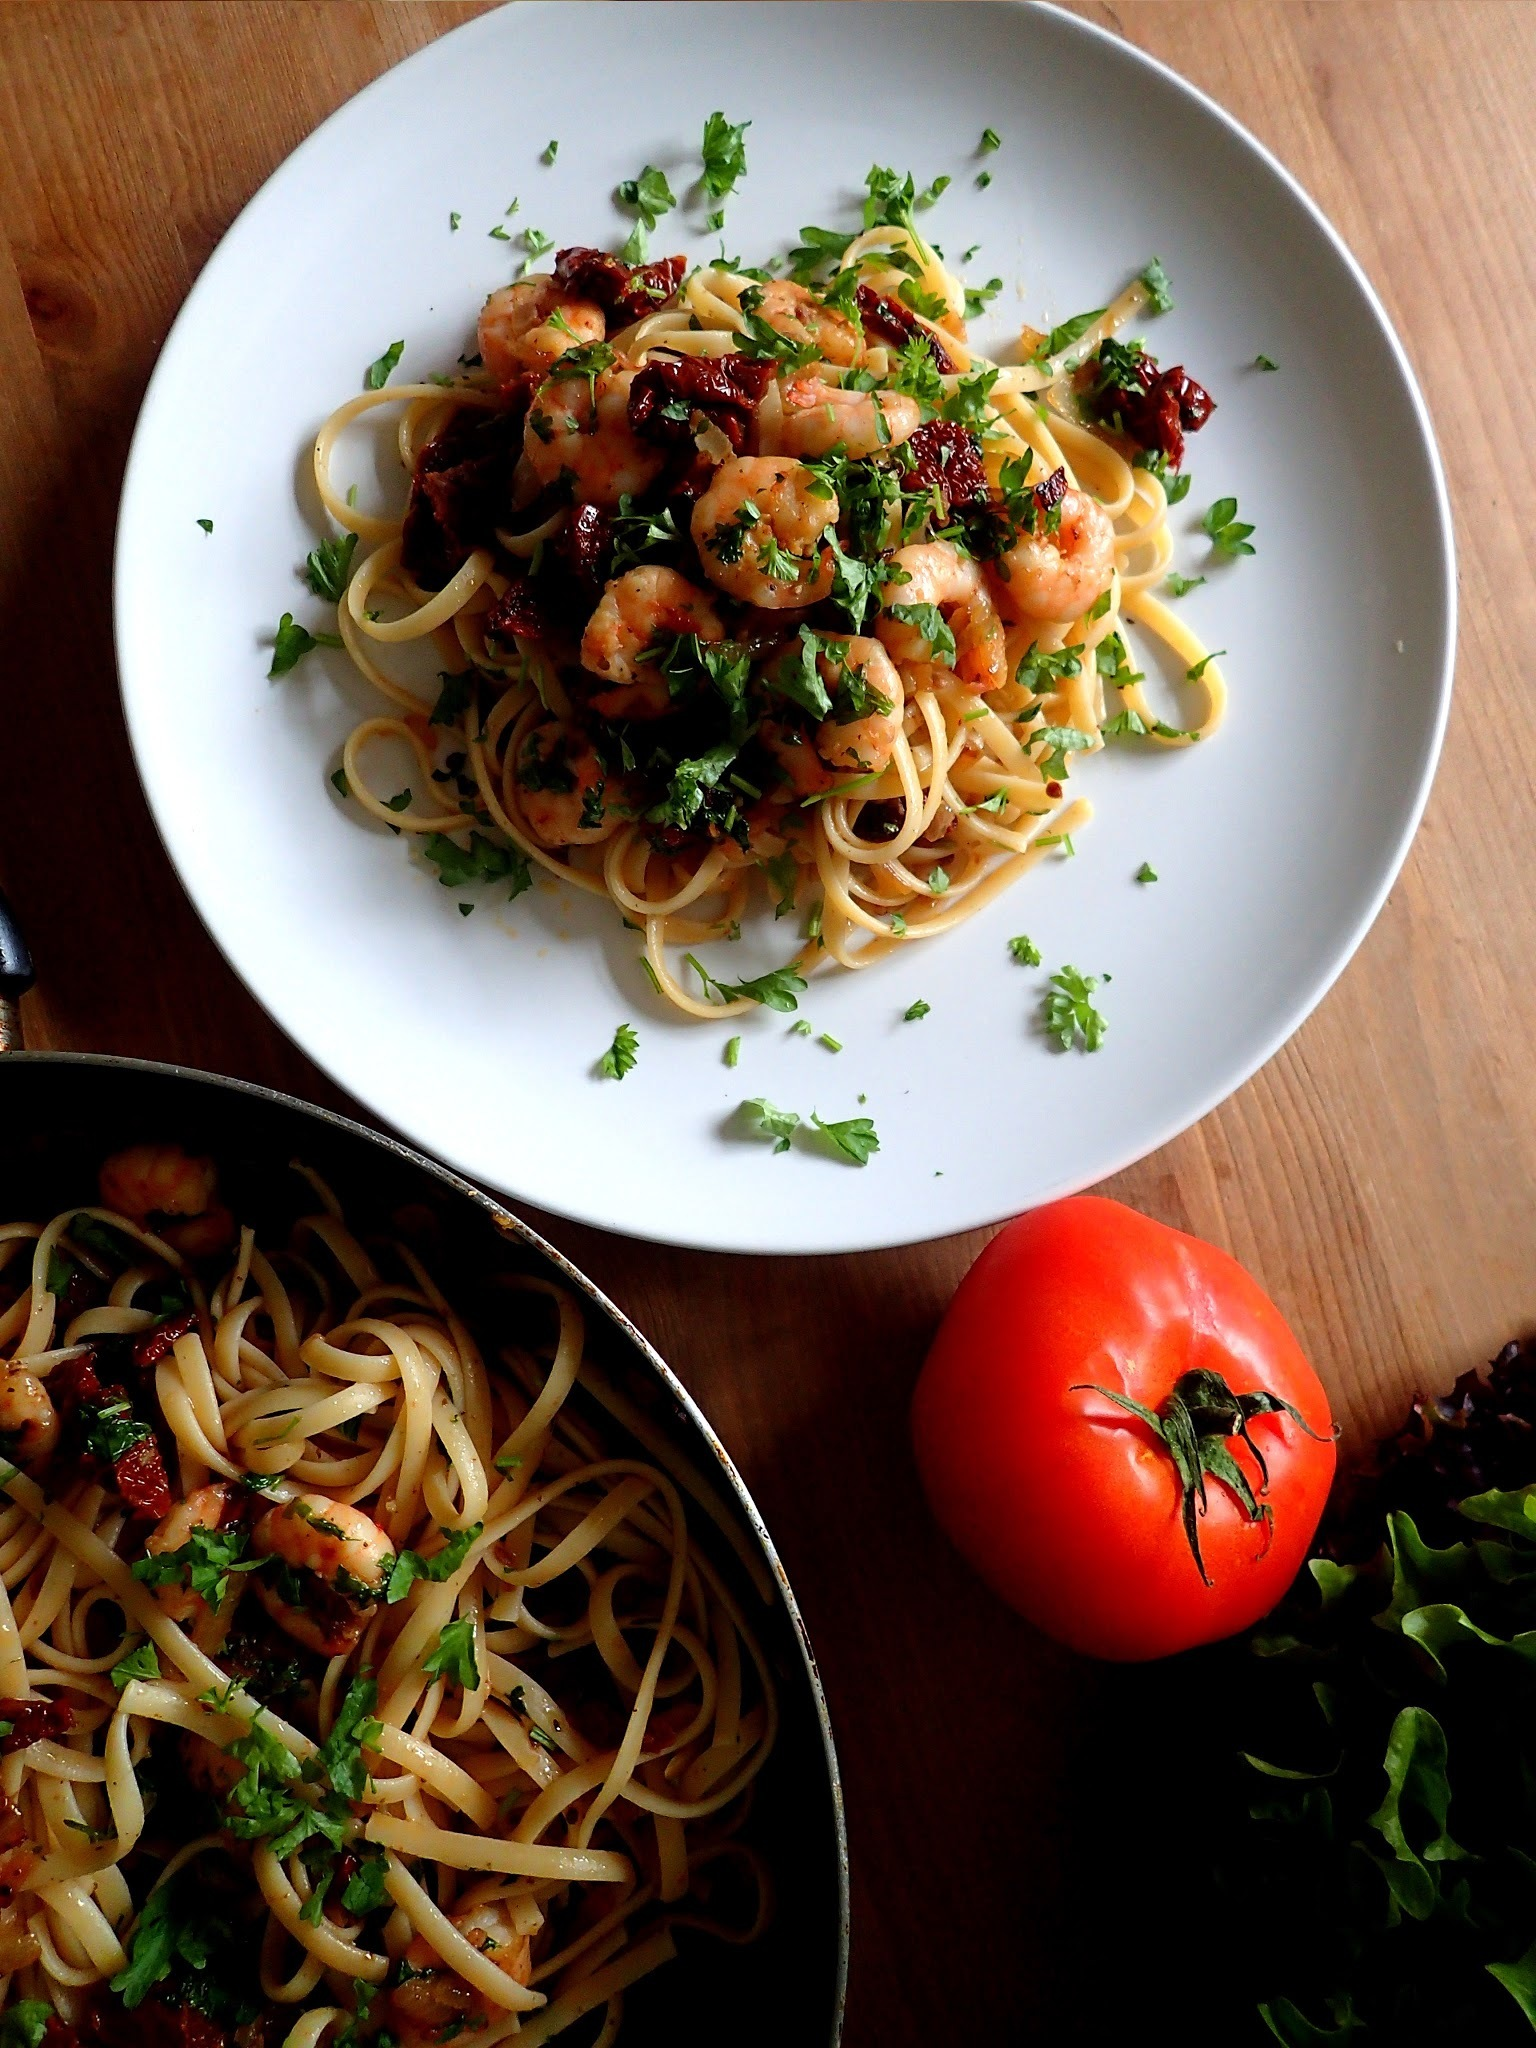 Pasta with prawns and sun-dried tomatoes - ultra quick healthy lunch